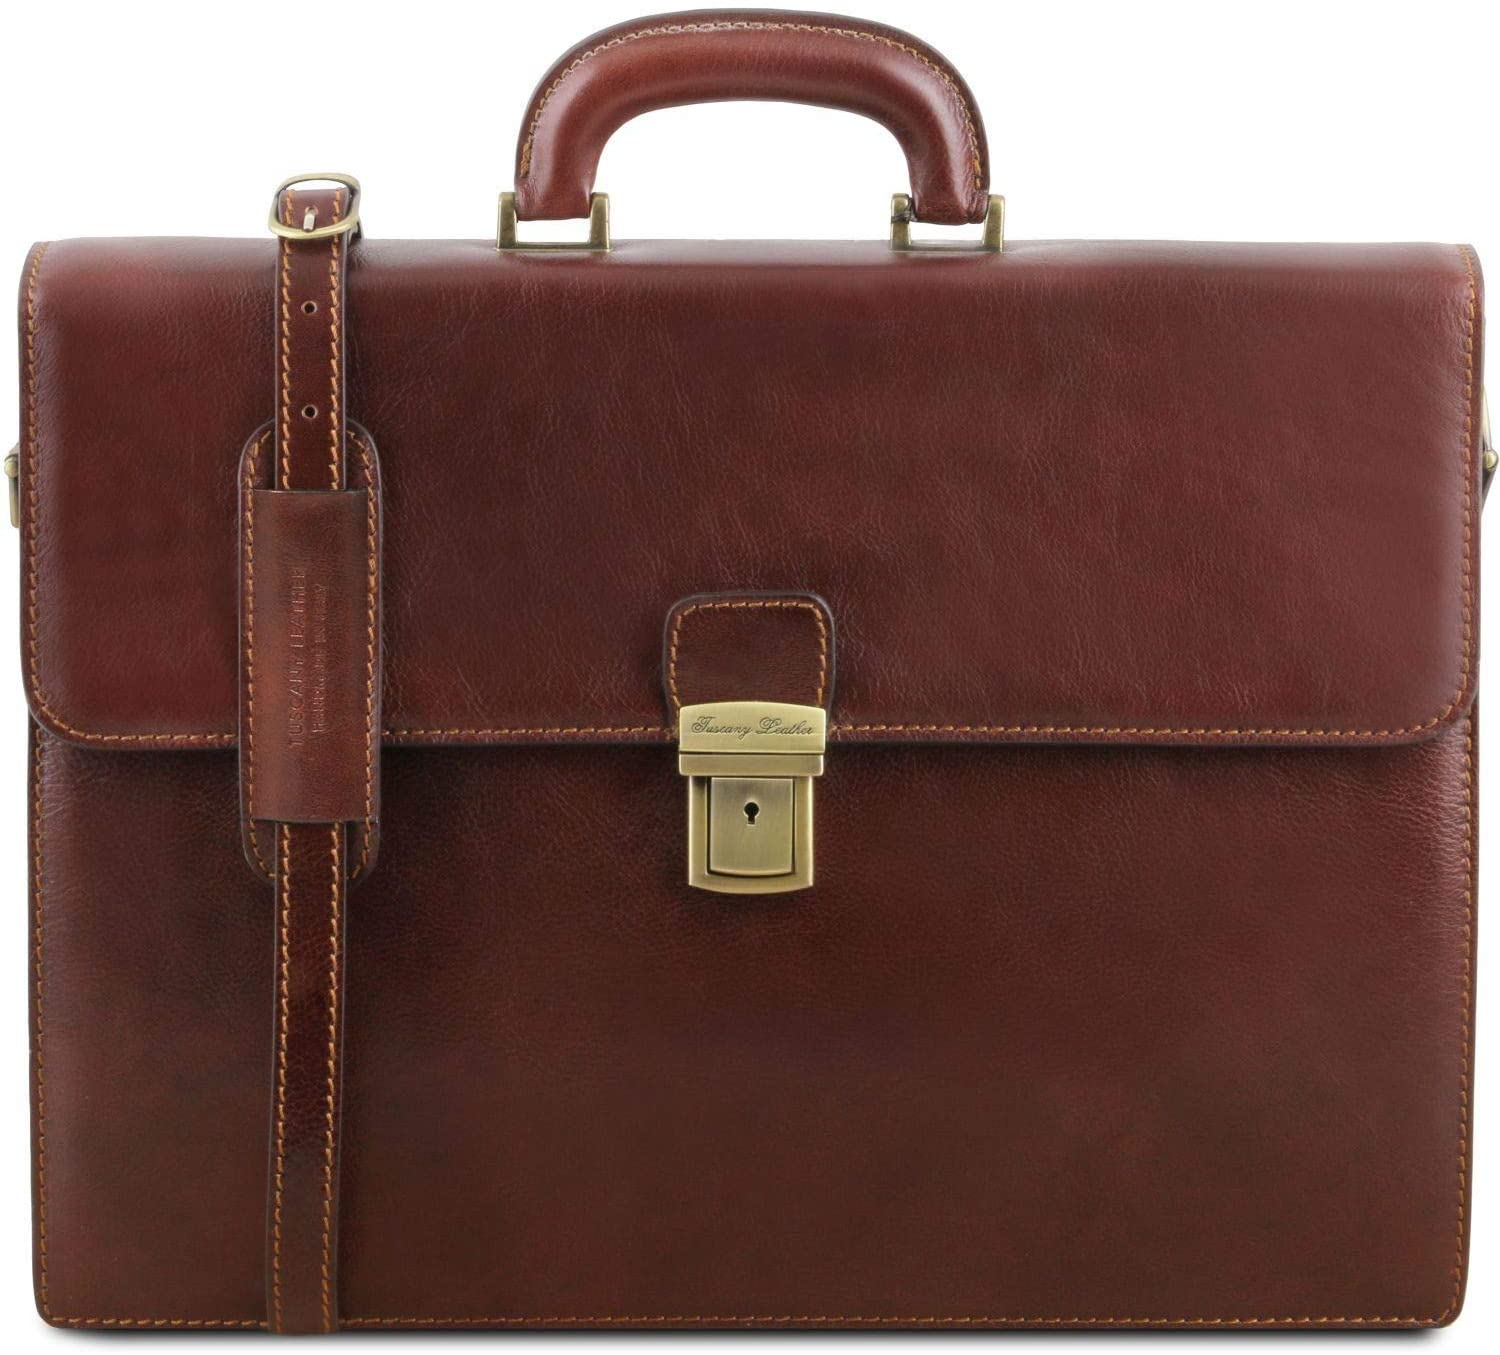 Tuscany Leather PARMA Leather briefcase 2 compartments Brown - TL141350/1